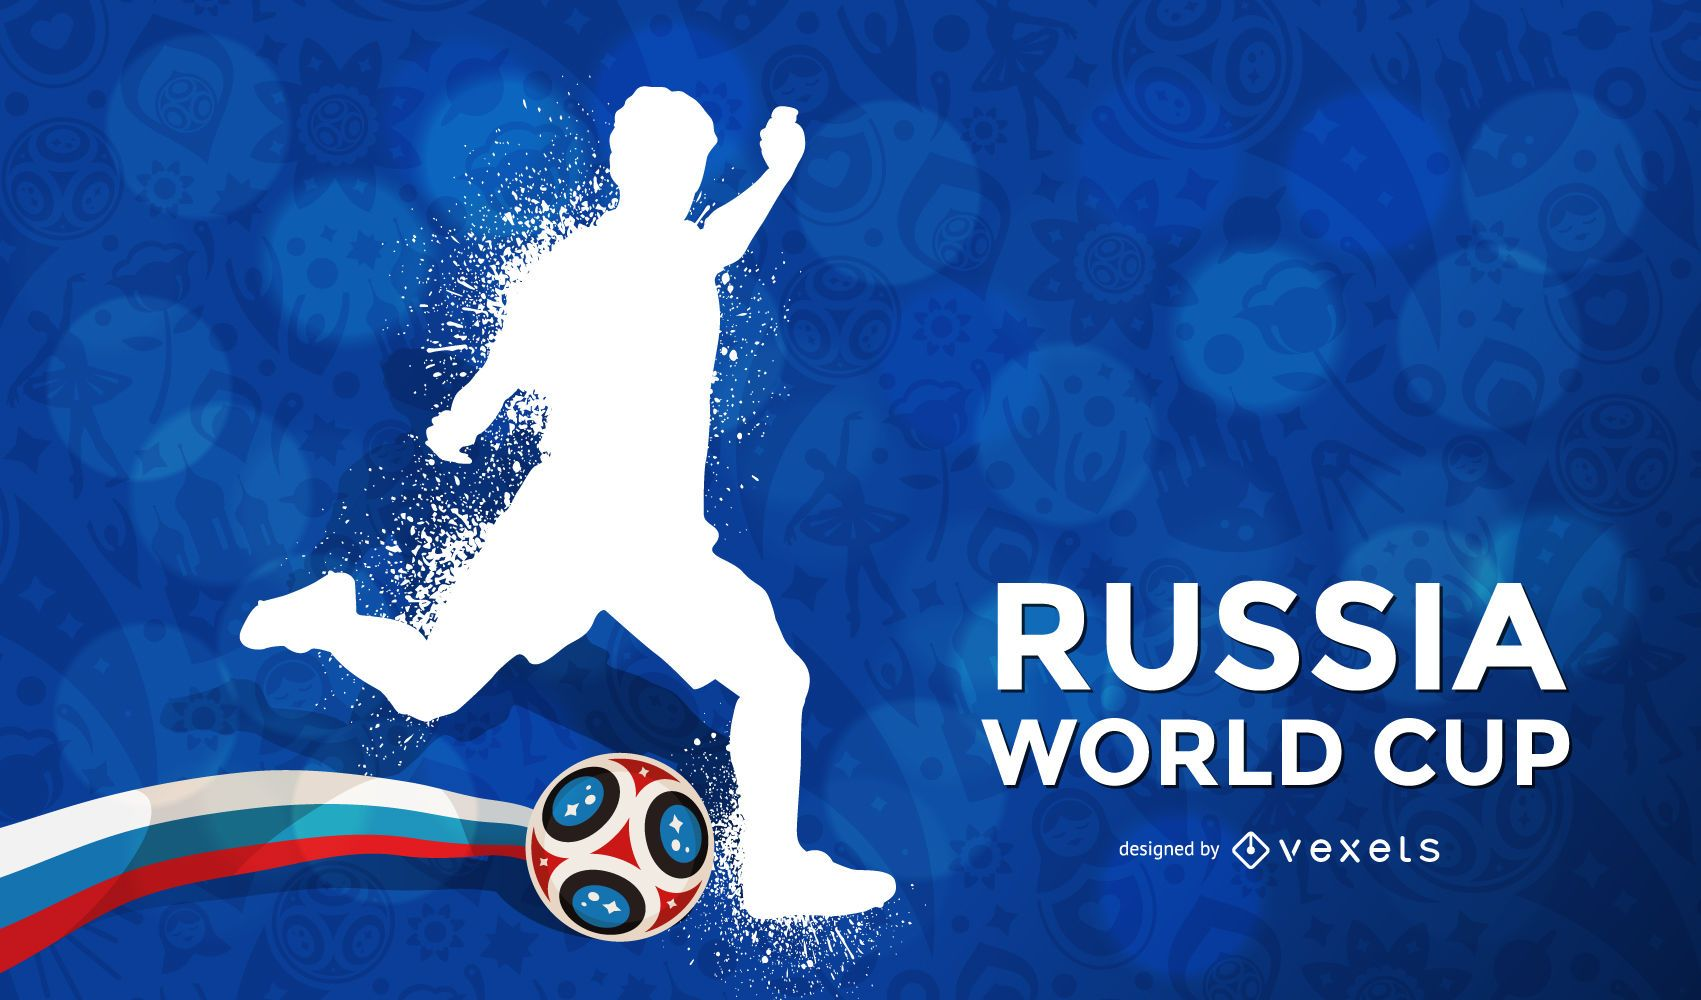 Russia world cup background